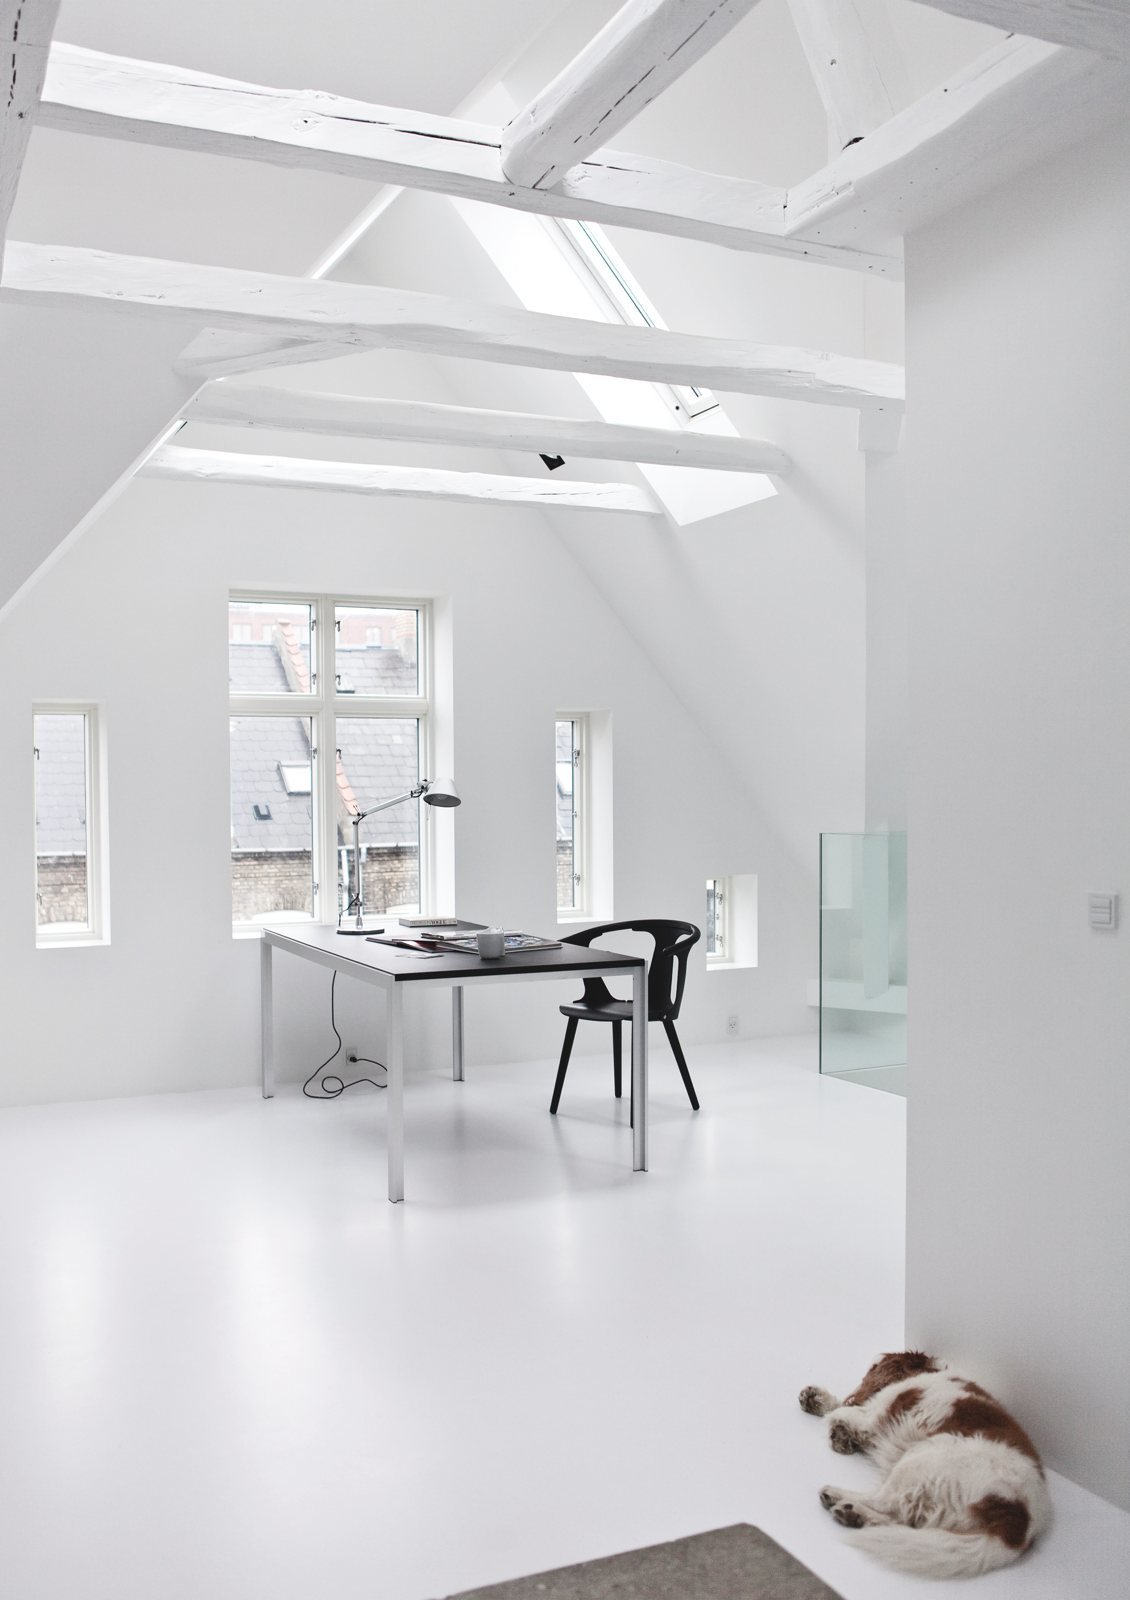 Attic workspace. Copenhagen Townhouse II by Norm.Architects. © Jonas Bjerre-Poulsen.  Modern Danish Homes We Love from Studies and workspaces